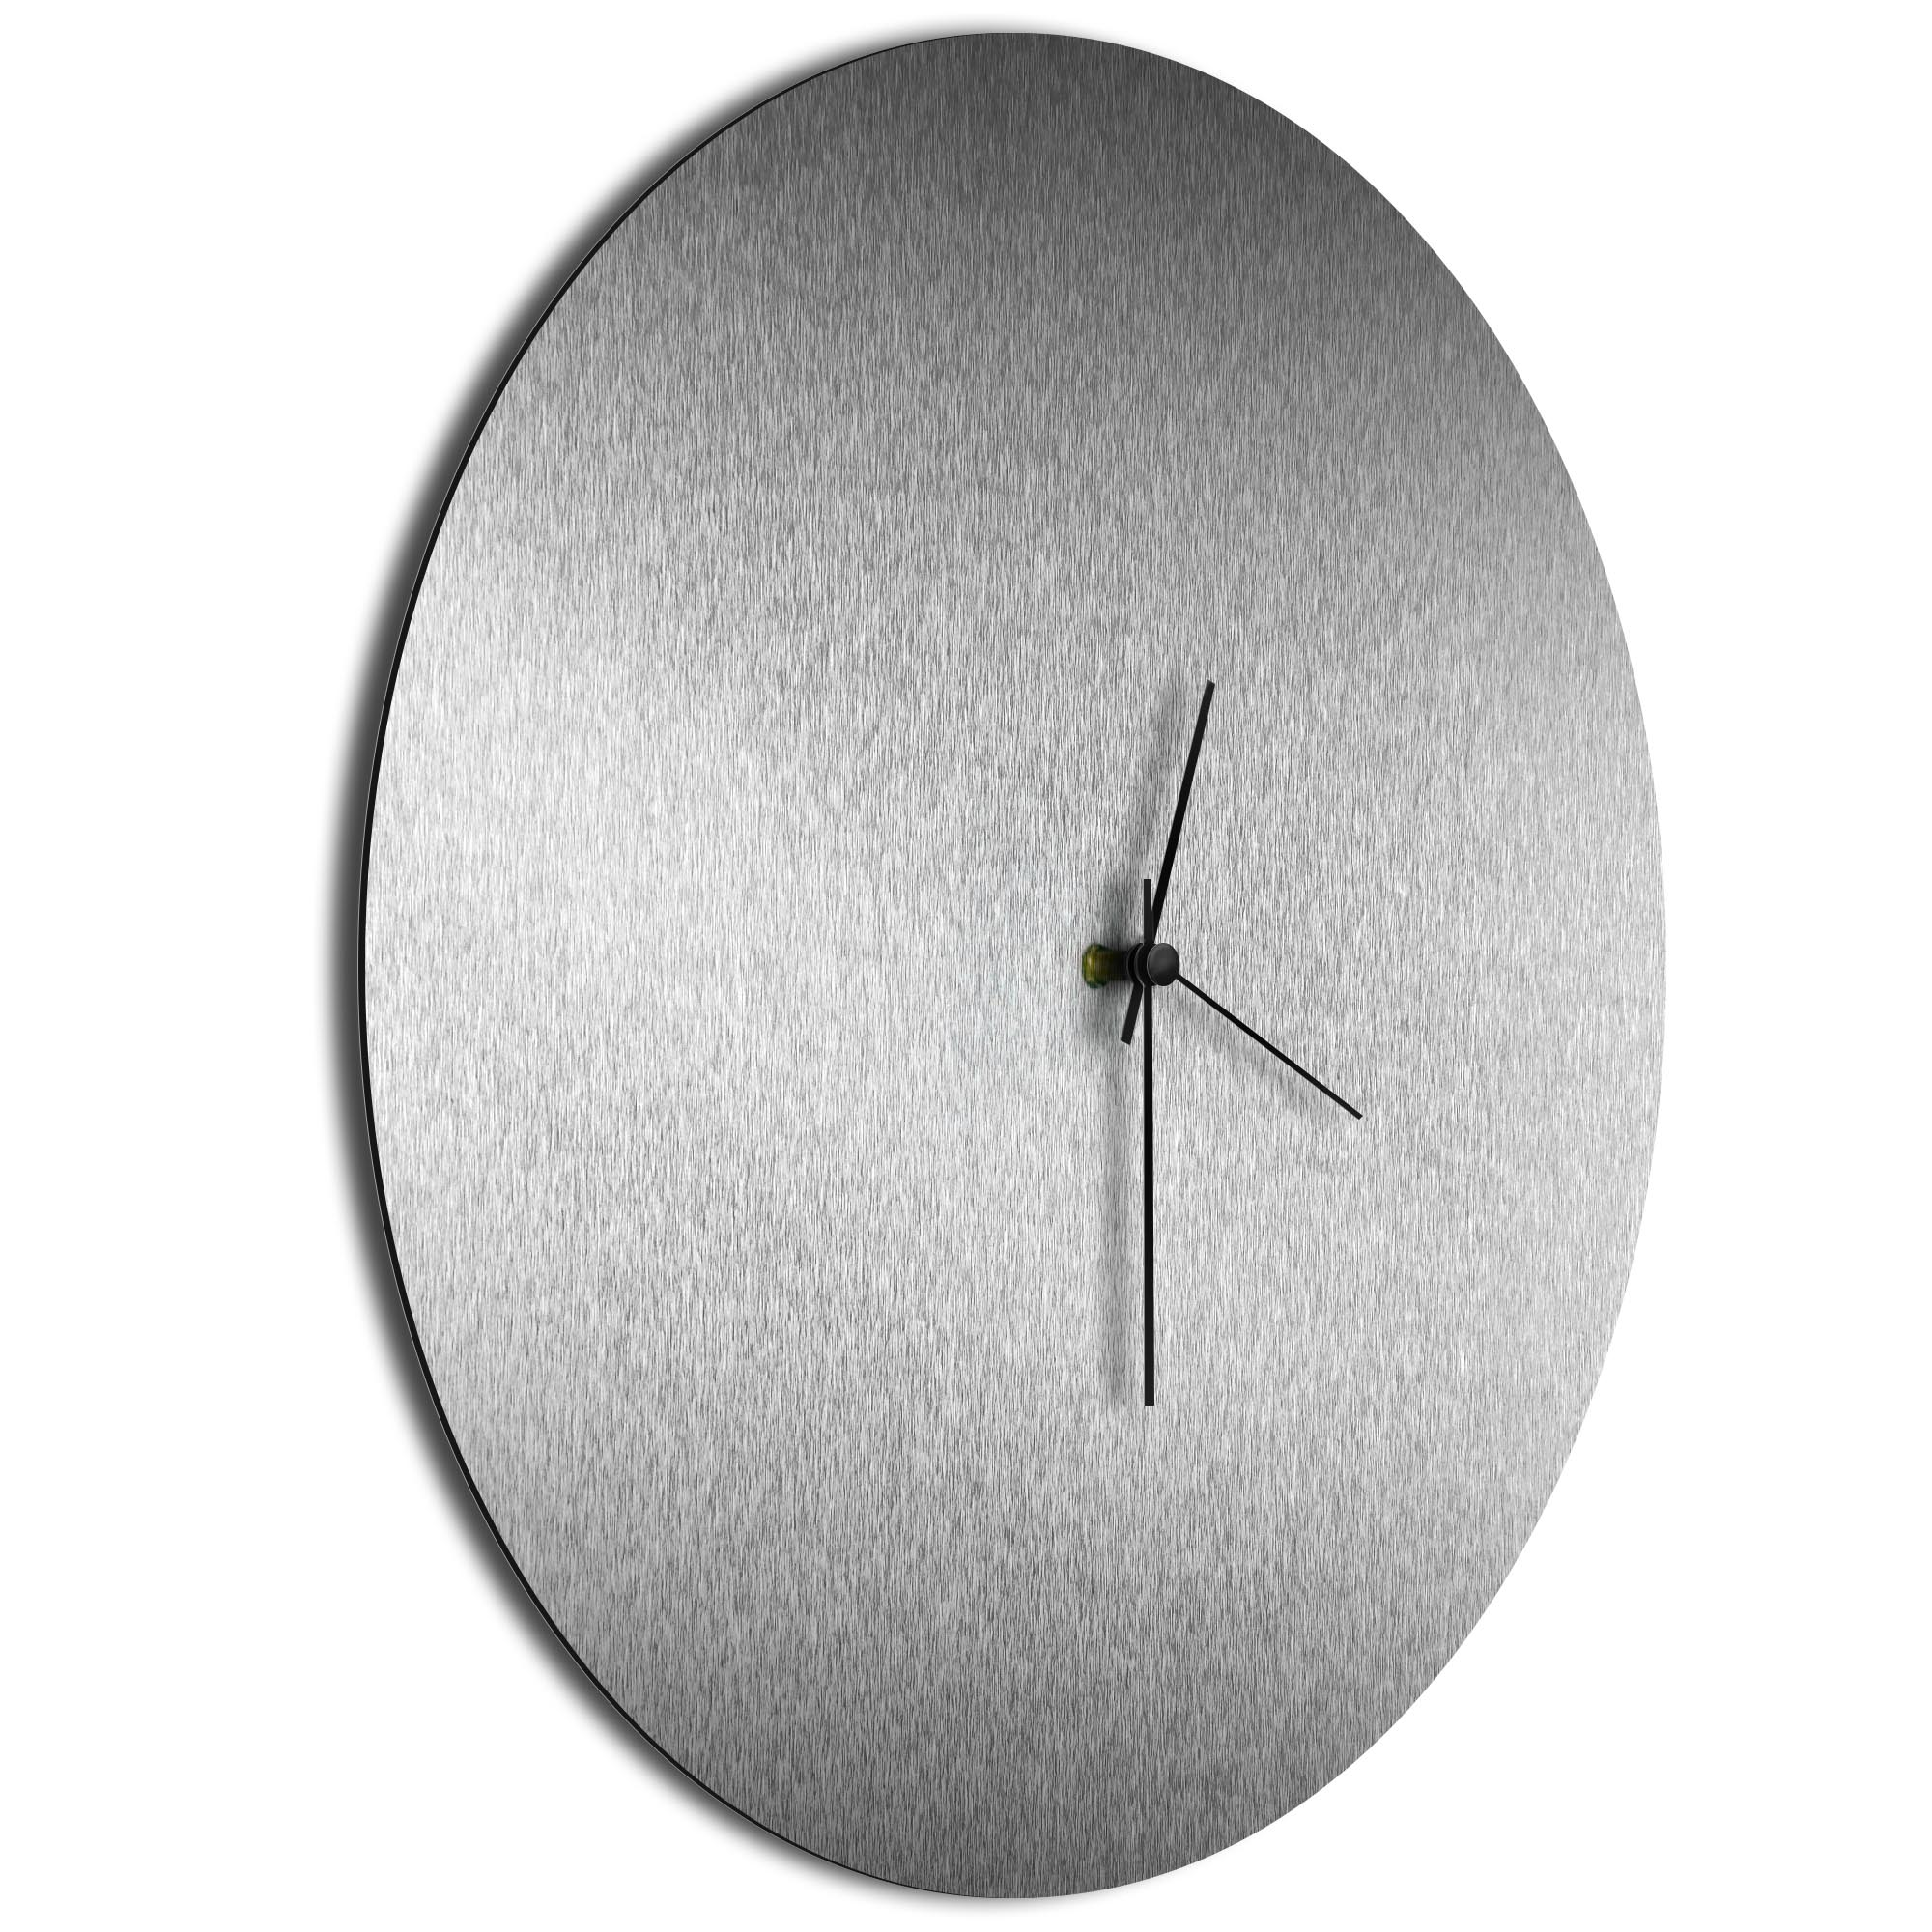 Silversmith Circle Clock Black - Image 2